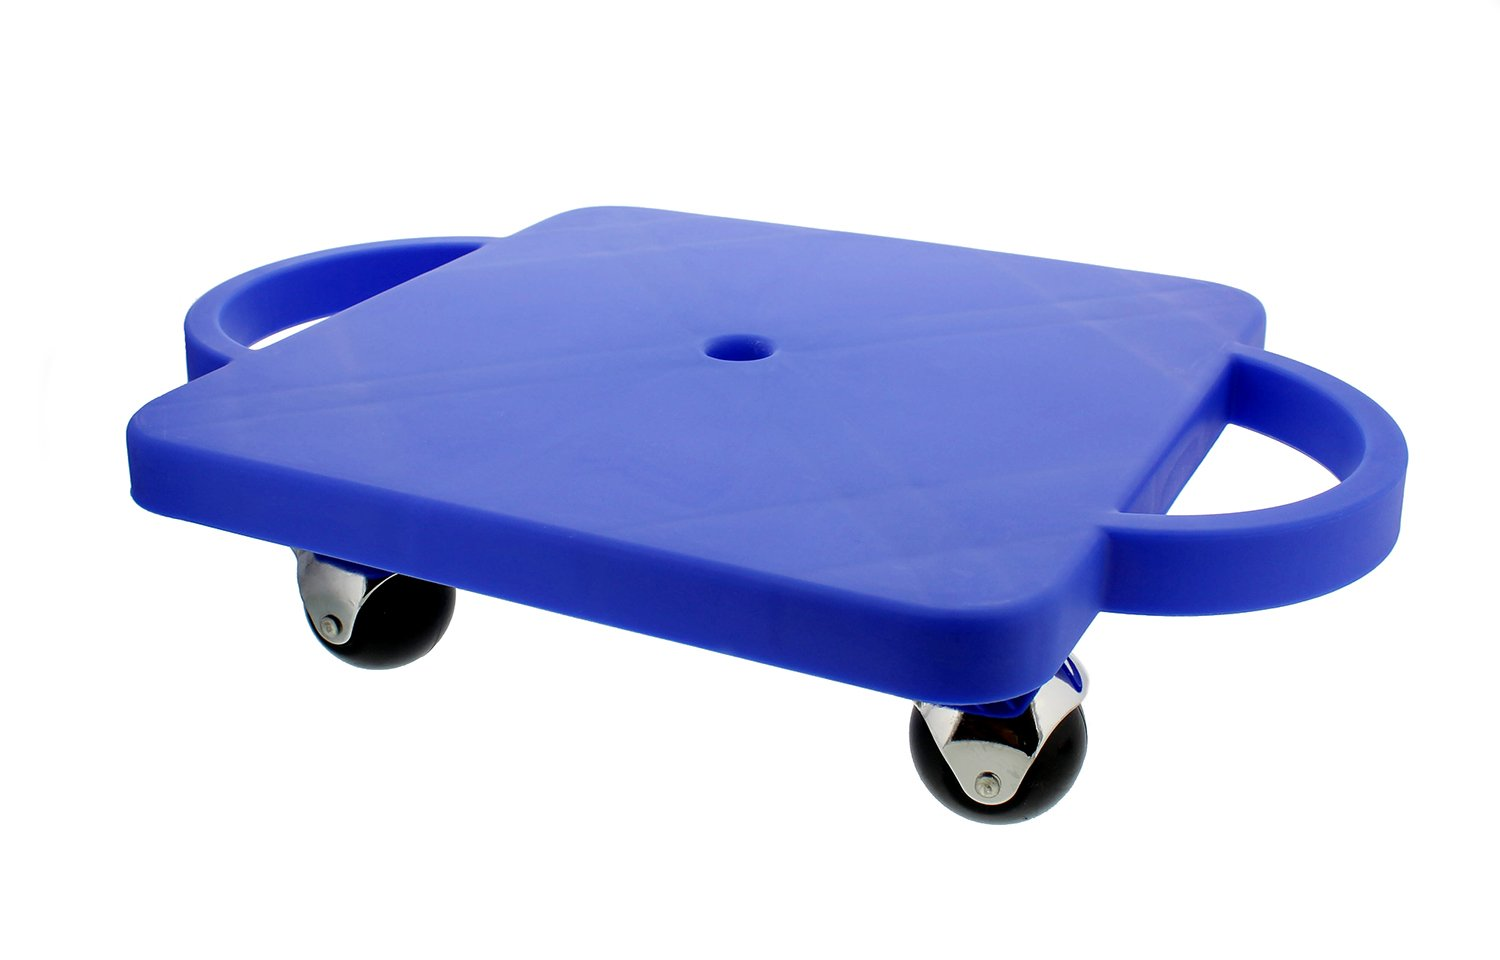 Get Out! Plastic Scooter Board in Blue, Wide Handles, 12in x 12in - Gym Class Manual Scooter Board for Kids by Get Out!